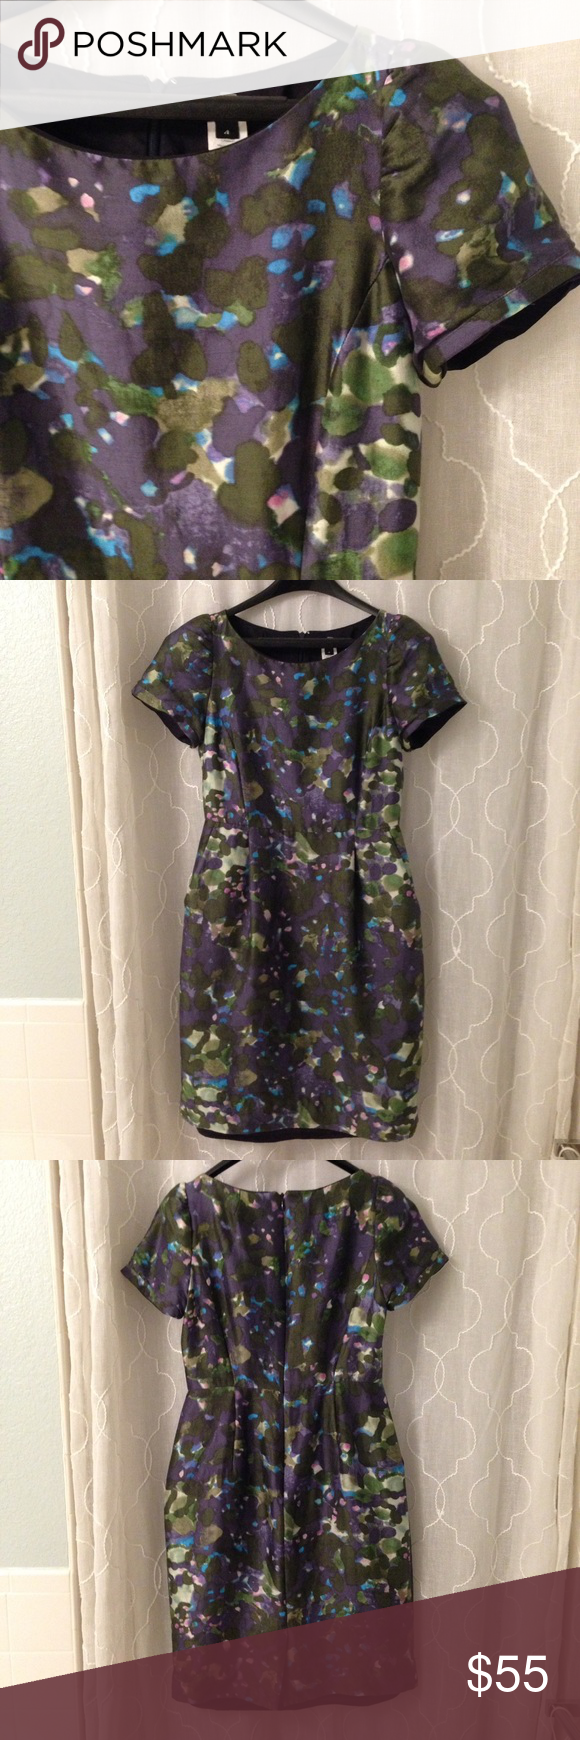 J crew Lillian garden shade sheath 4 EXTRA PICS Extra pictures.  Beautiful dress. Has a slight sheen from the silk.  Hand washed, in retrospect not smart, so the lining is now slightly longer than the dress.  Easily remedied by a seamstress.  Still very beautiful, and in great condition.  Make an offer! J. Crew Dresses Midi